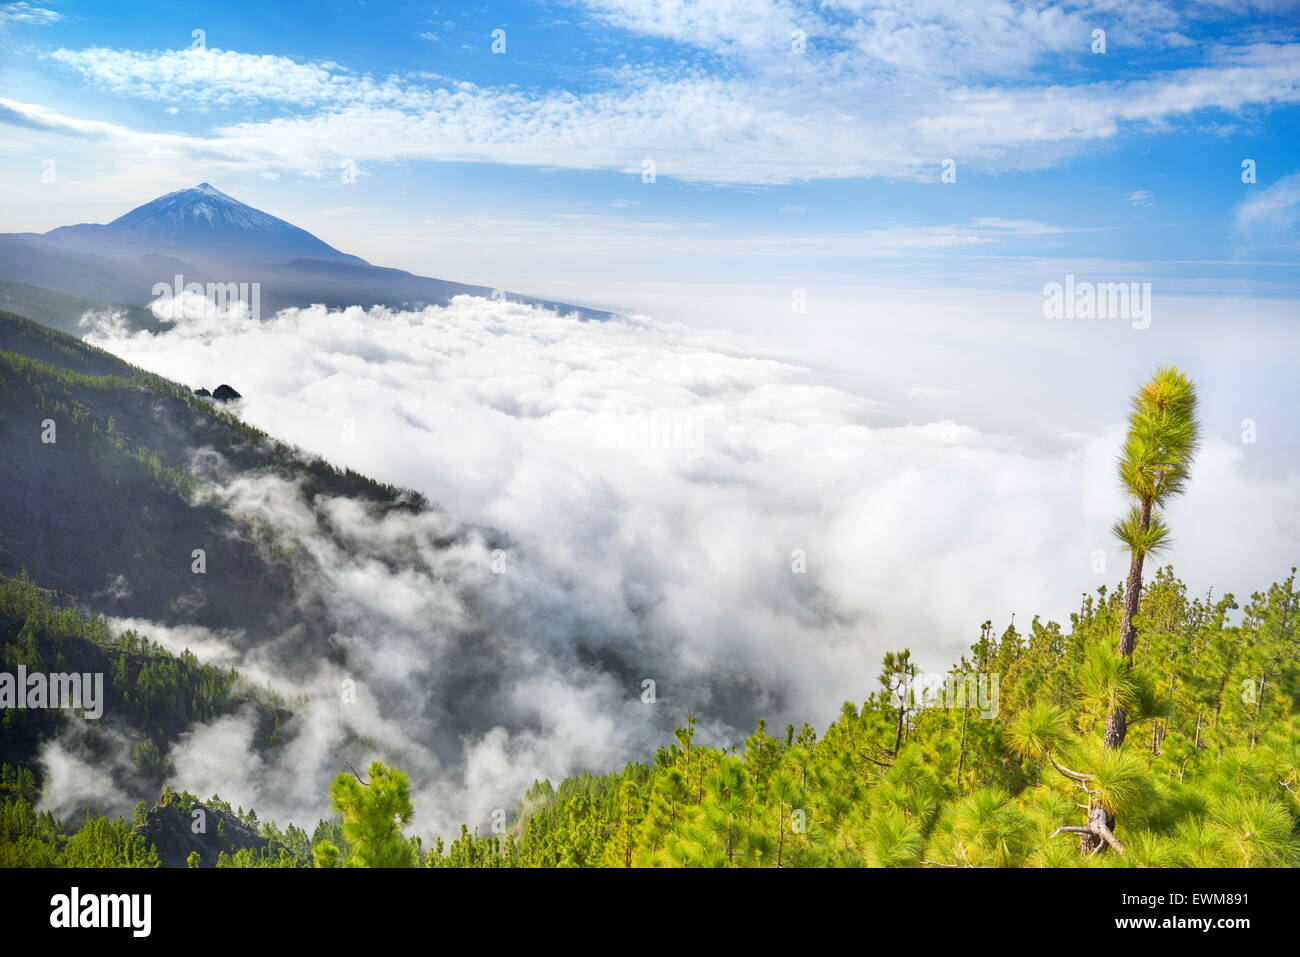 Tenerife - Teide Volcano Mount above sea of clouds, Canary Islands, Spain - Stock Image